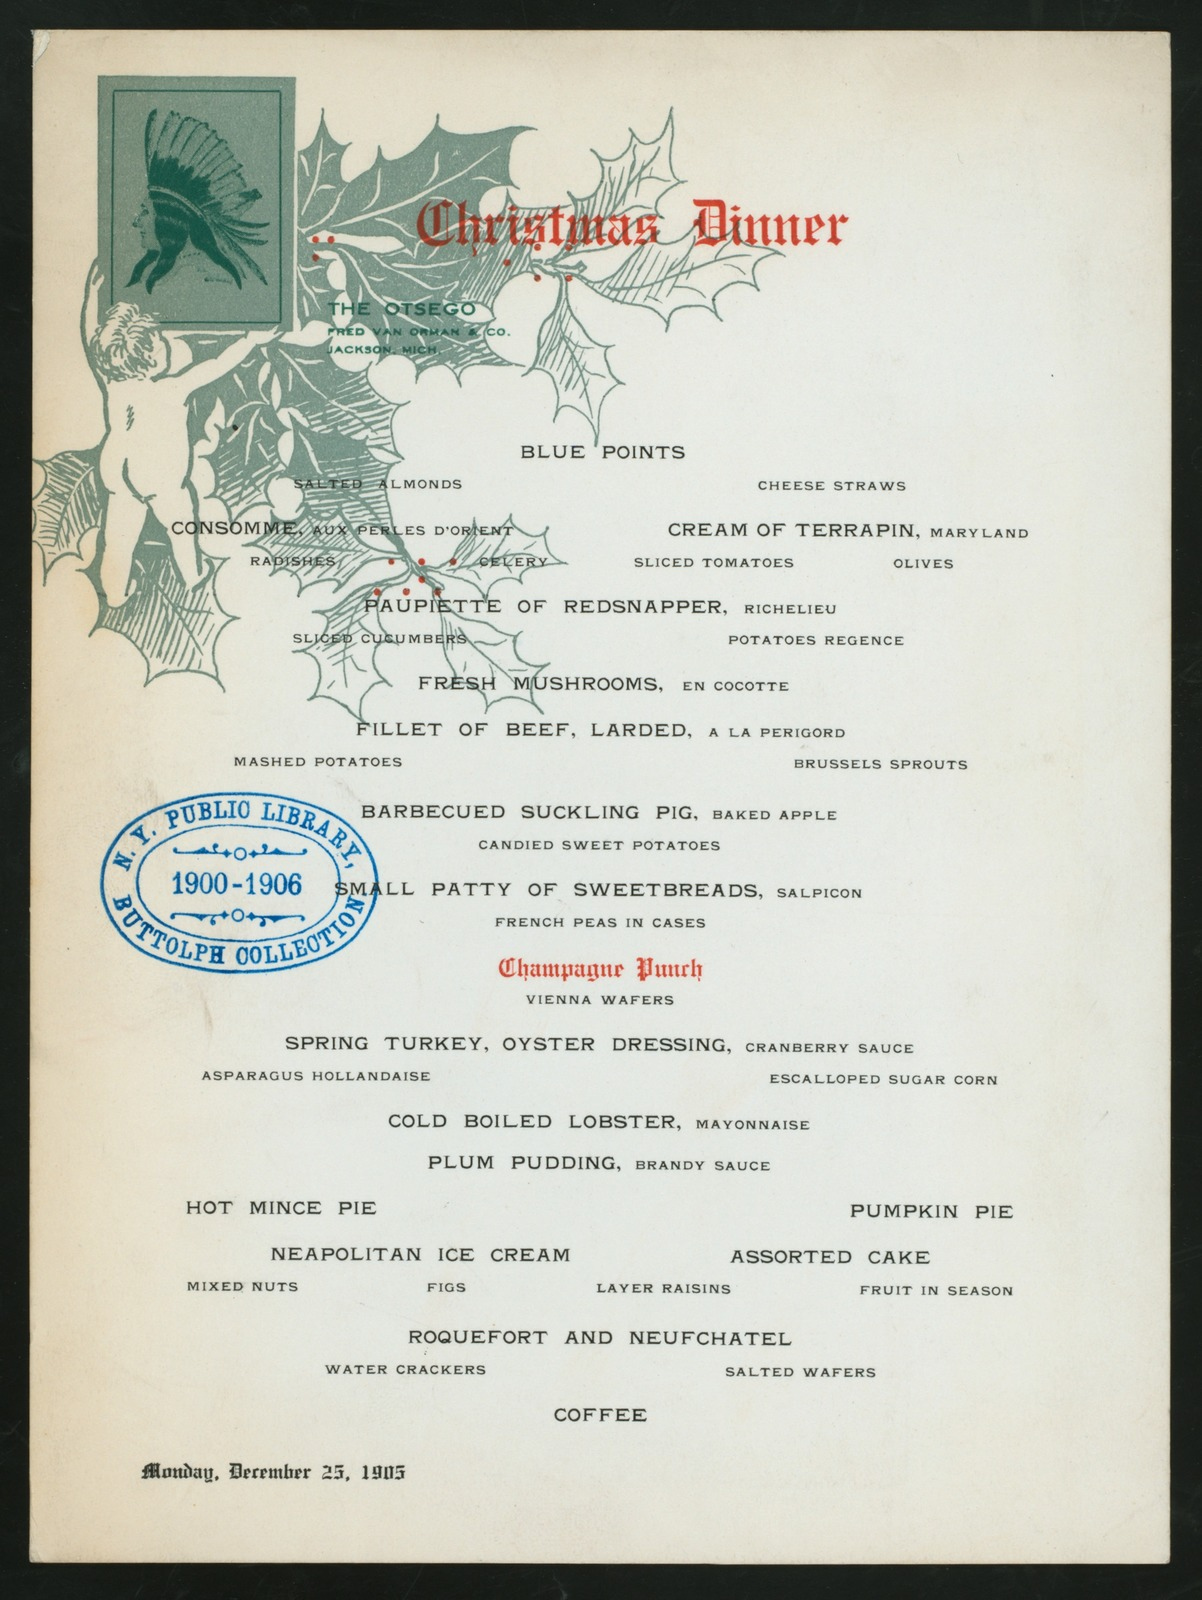 """CHRISTMAS DINNER [held by] THE OTSEGO [at] """"JACKSON, MI"""" (HOTEL;)"""